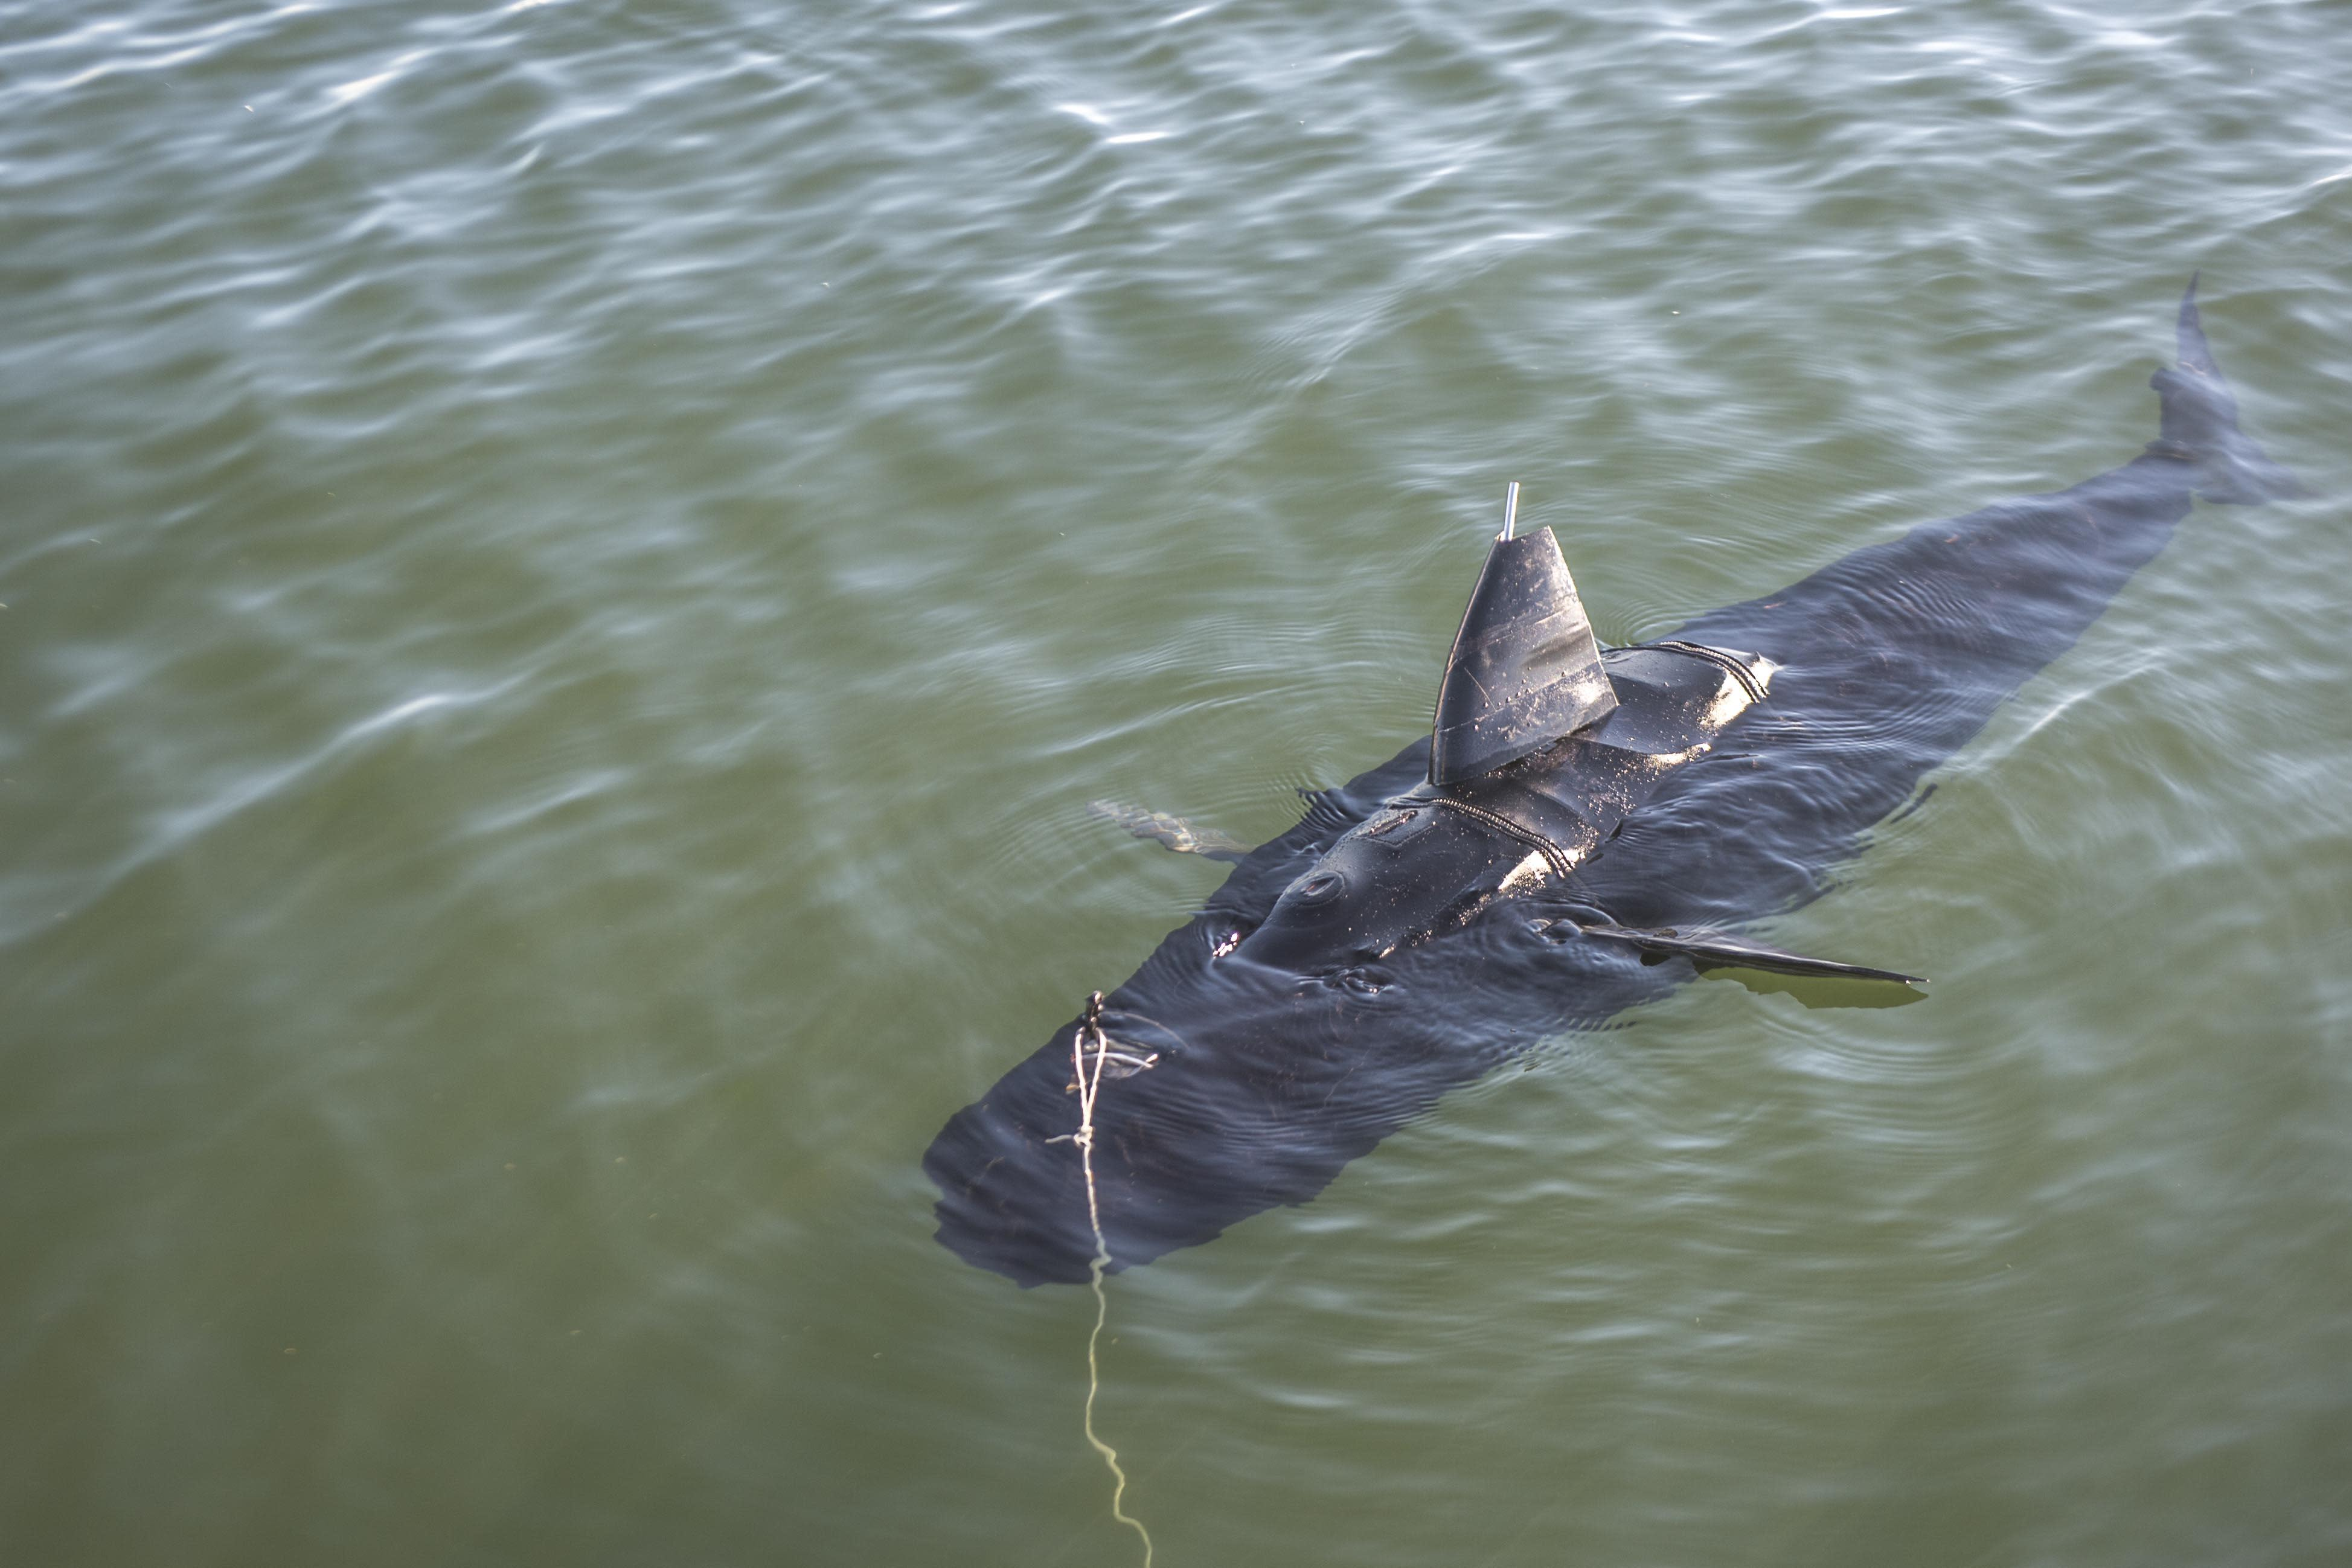 US Navy turns to 'Jaws' for drone inspiration